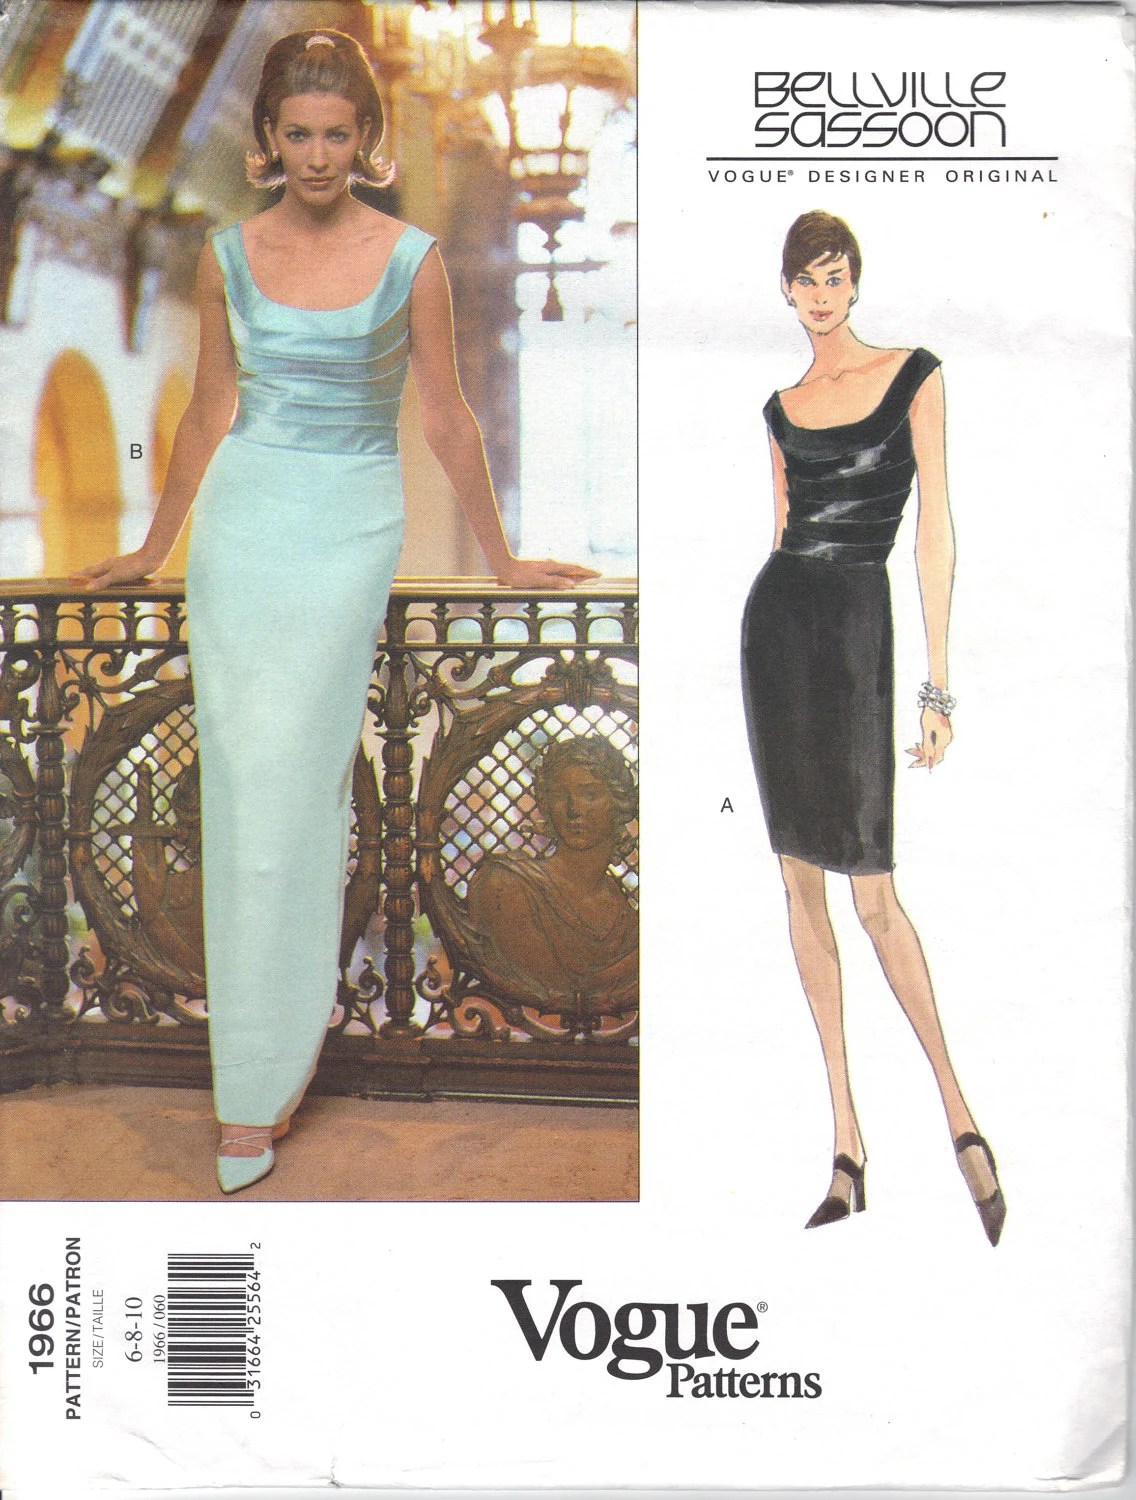 1990s Bellville Sassoon formal dress pattern - Vogue 1966